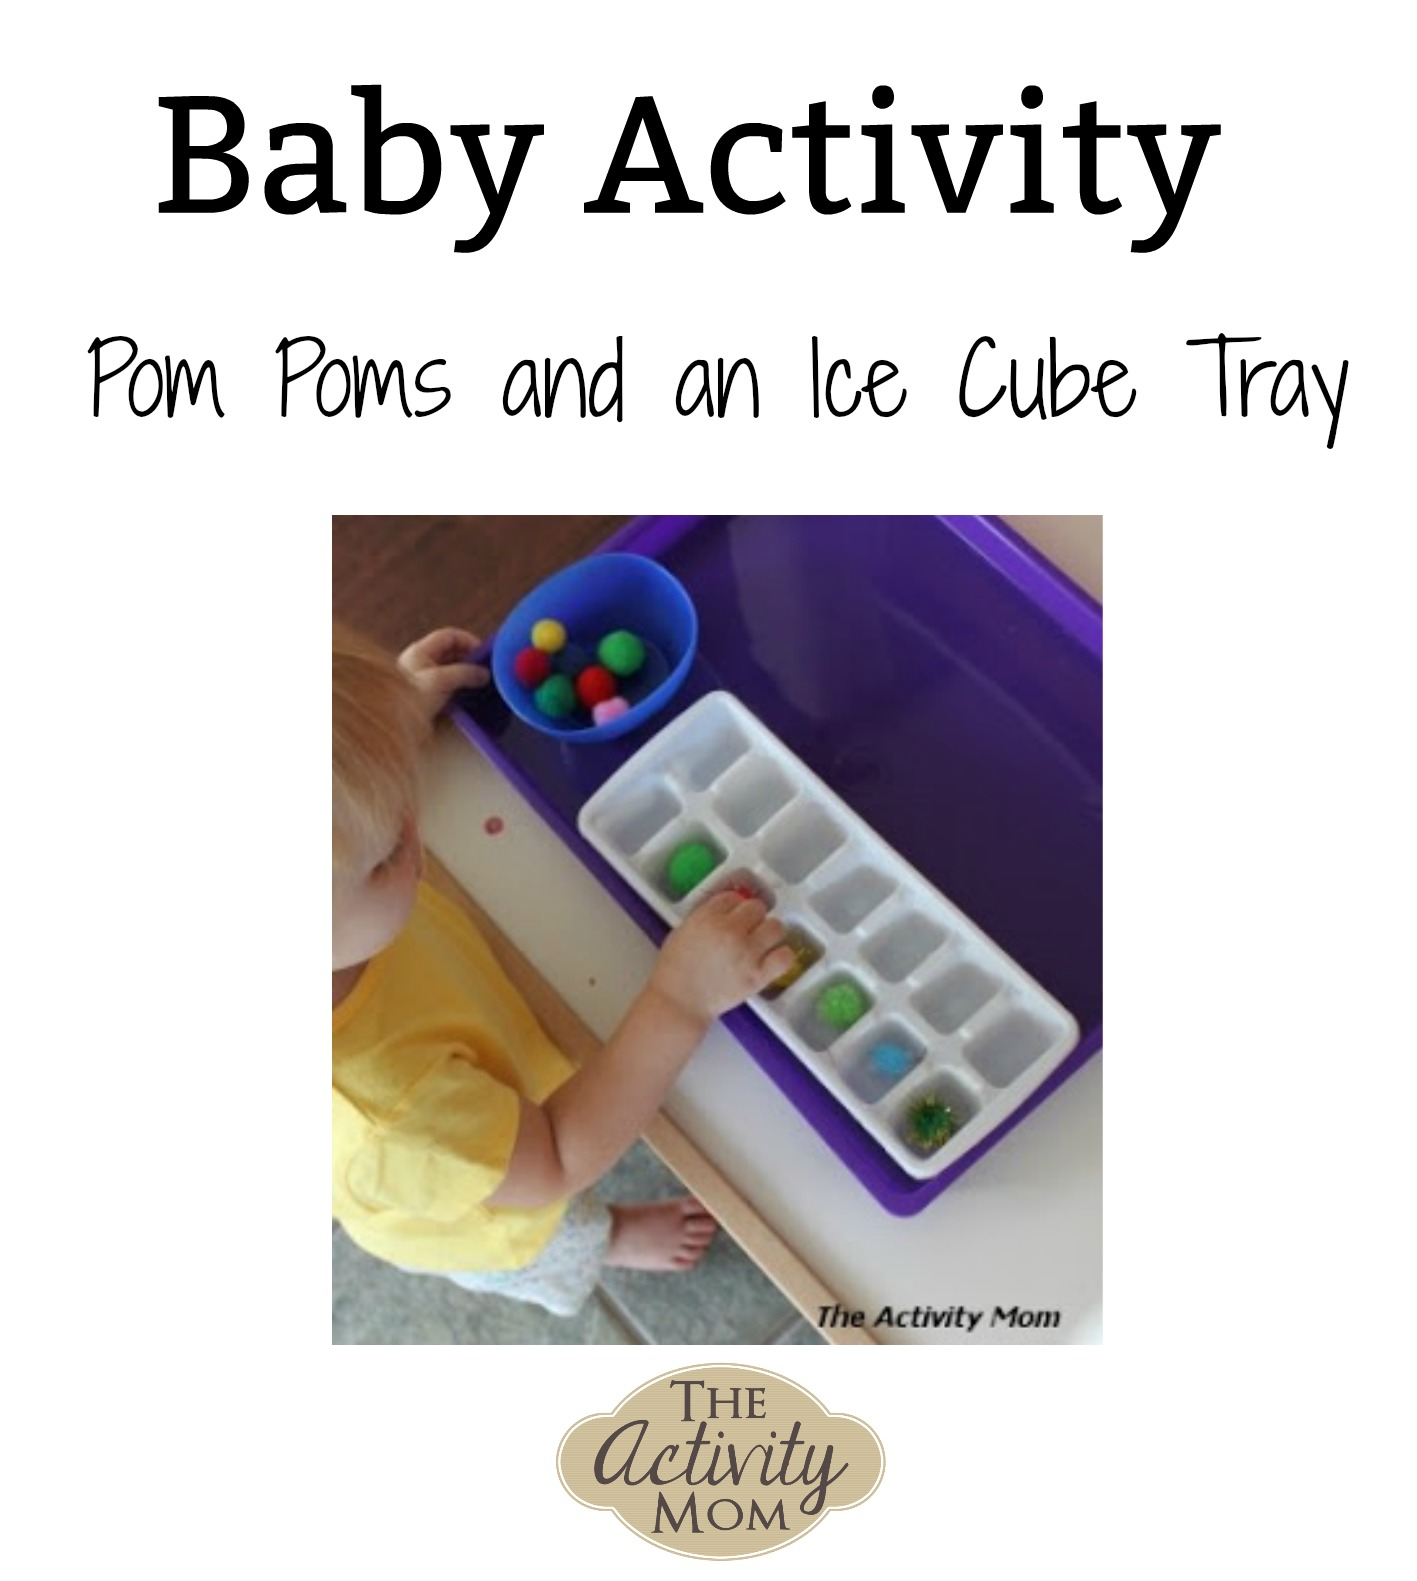 Baby/Toddler Activity – Pom Poms and Ice Cube Tray